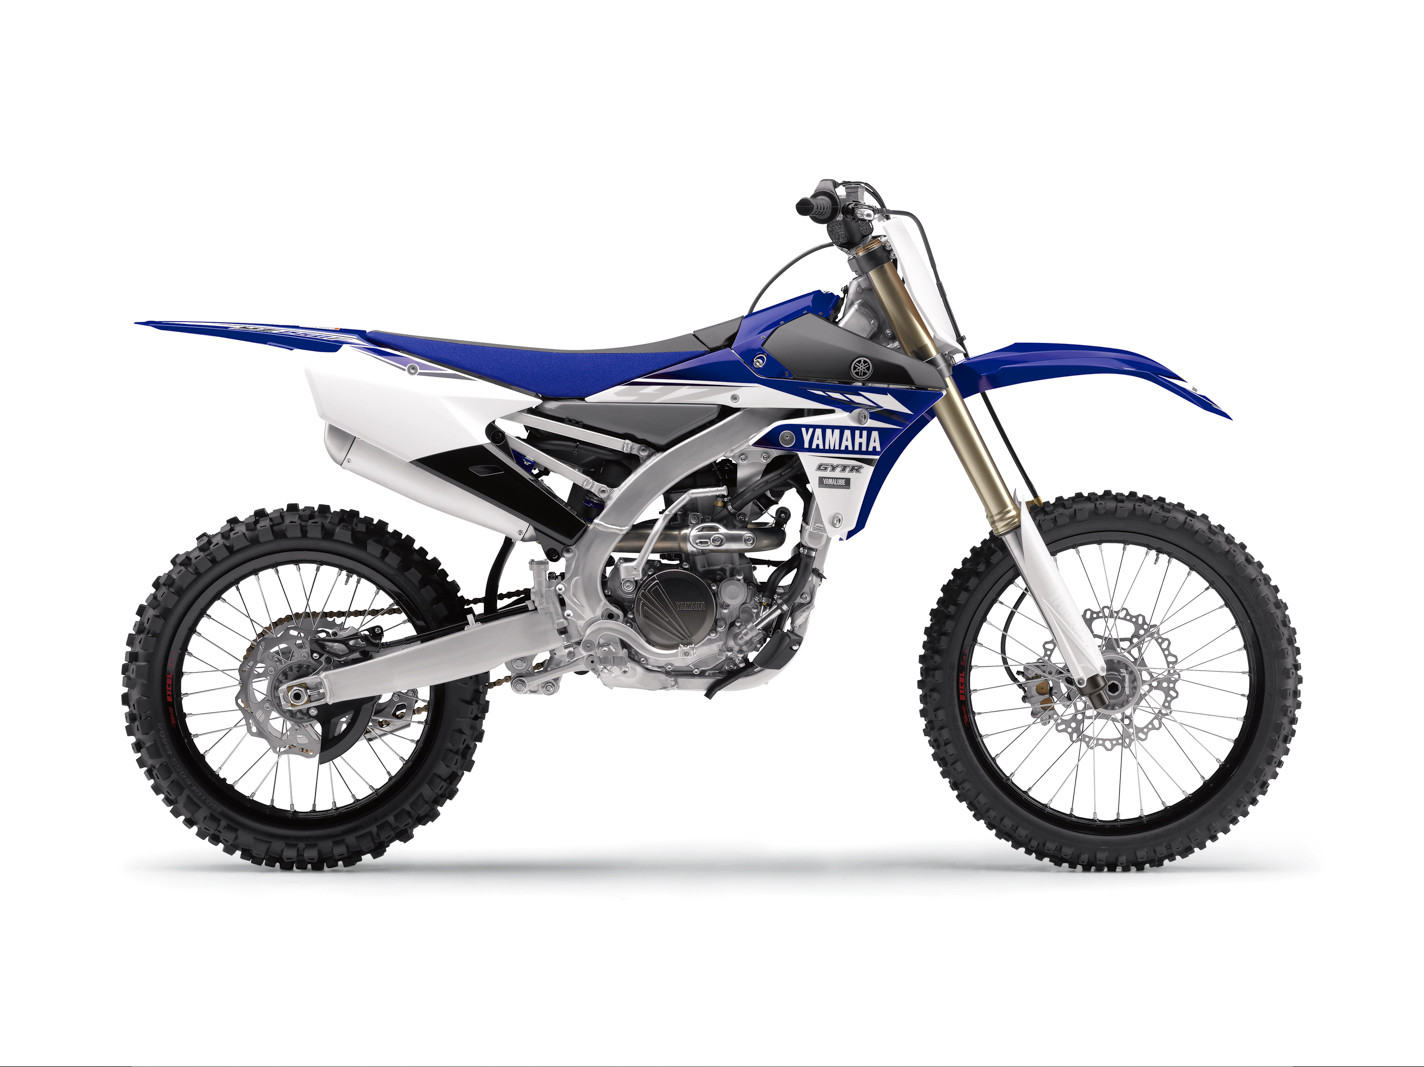 2017 Yamaha YZ250F - First Look: 2017 Yamaha Motocross and Off-Road Line - Motocross Pictures - Vital MX